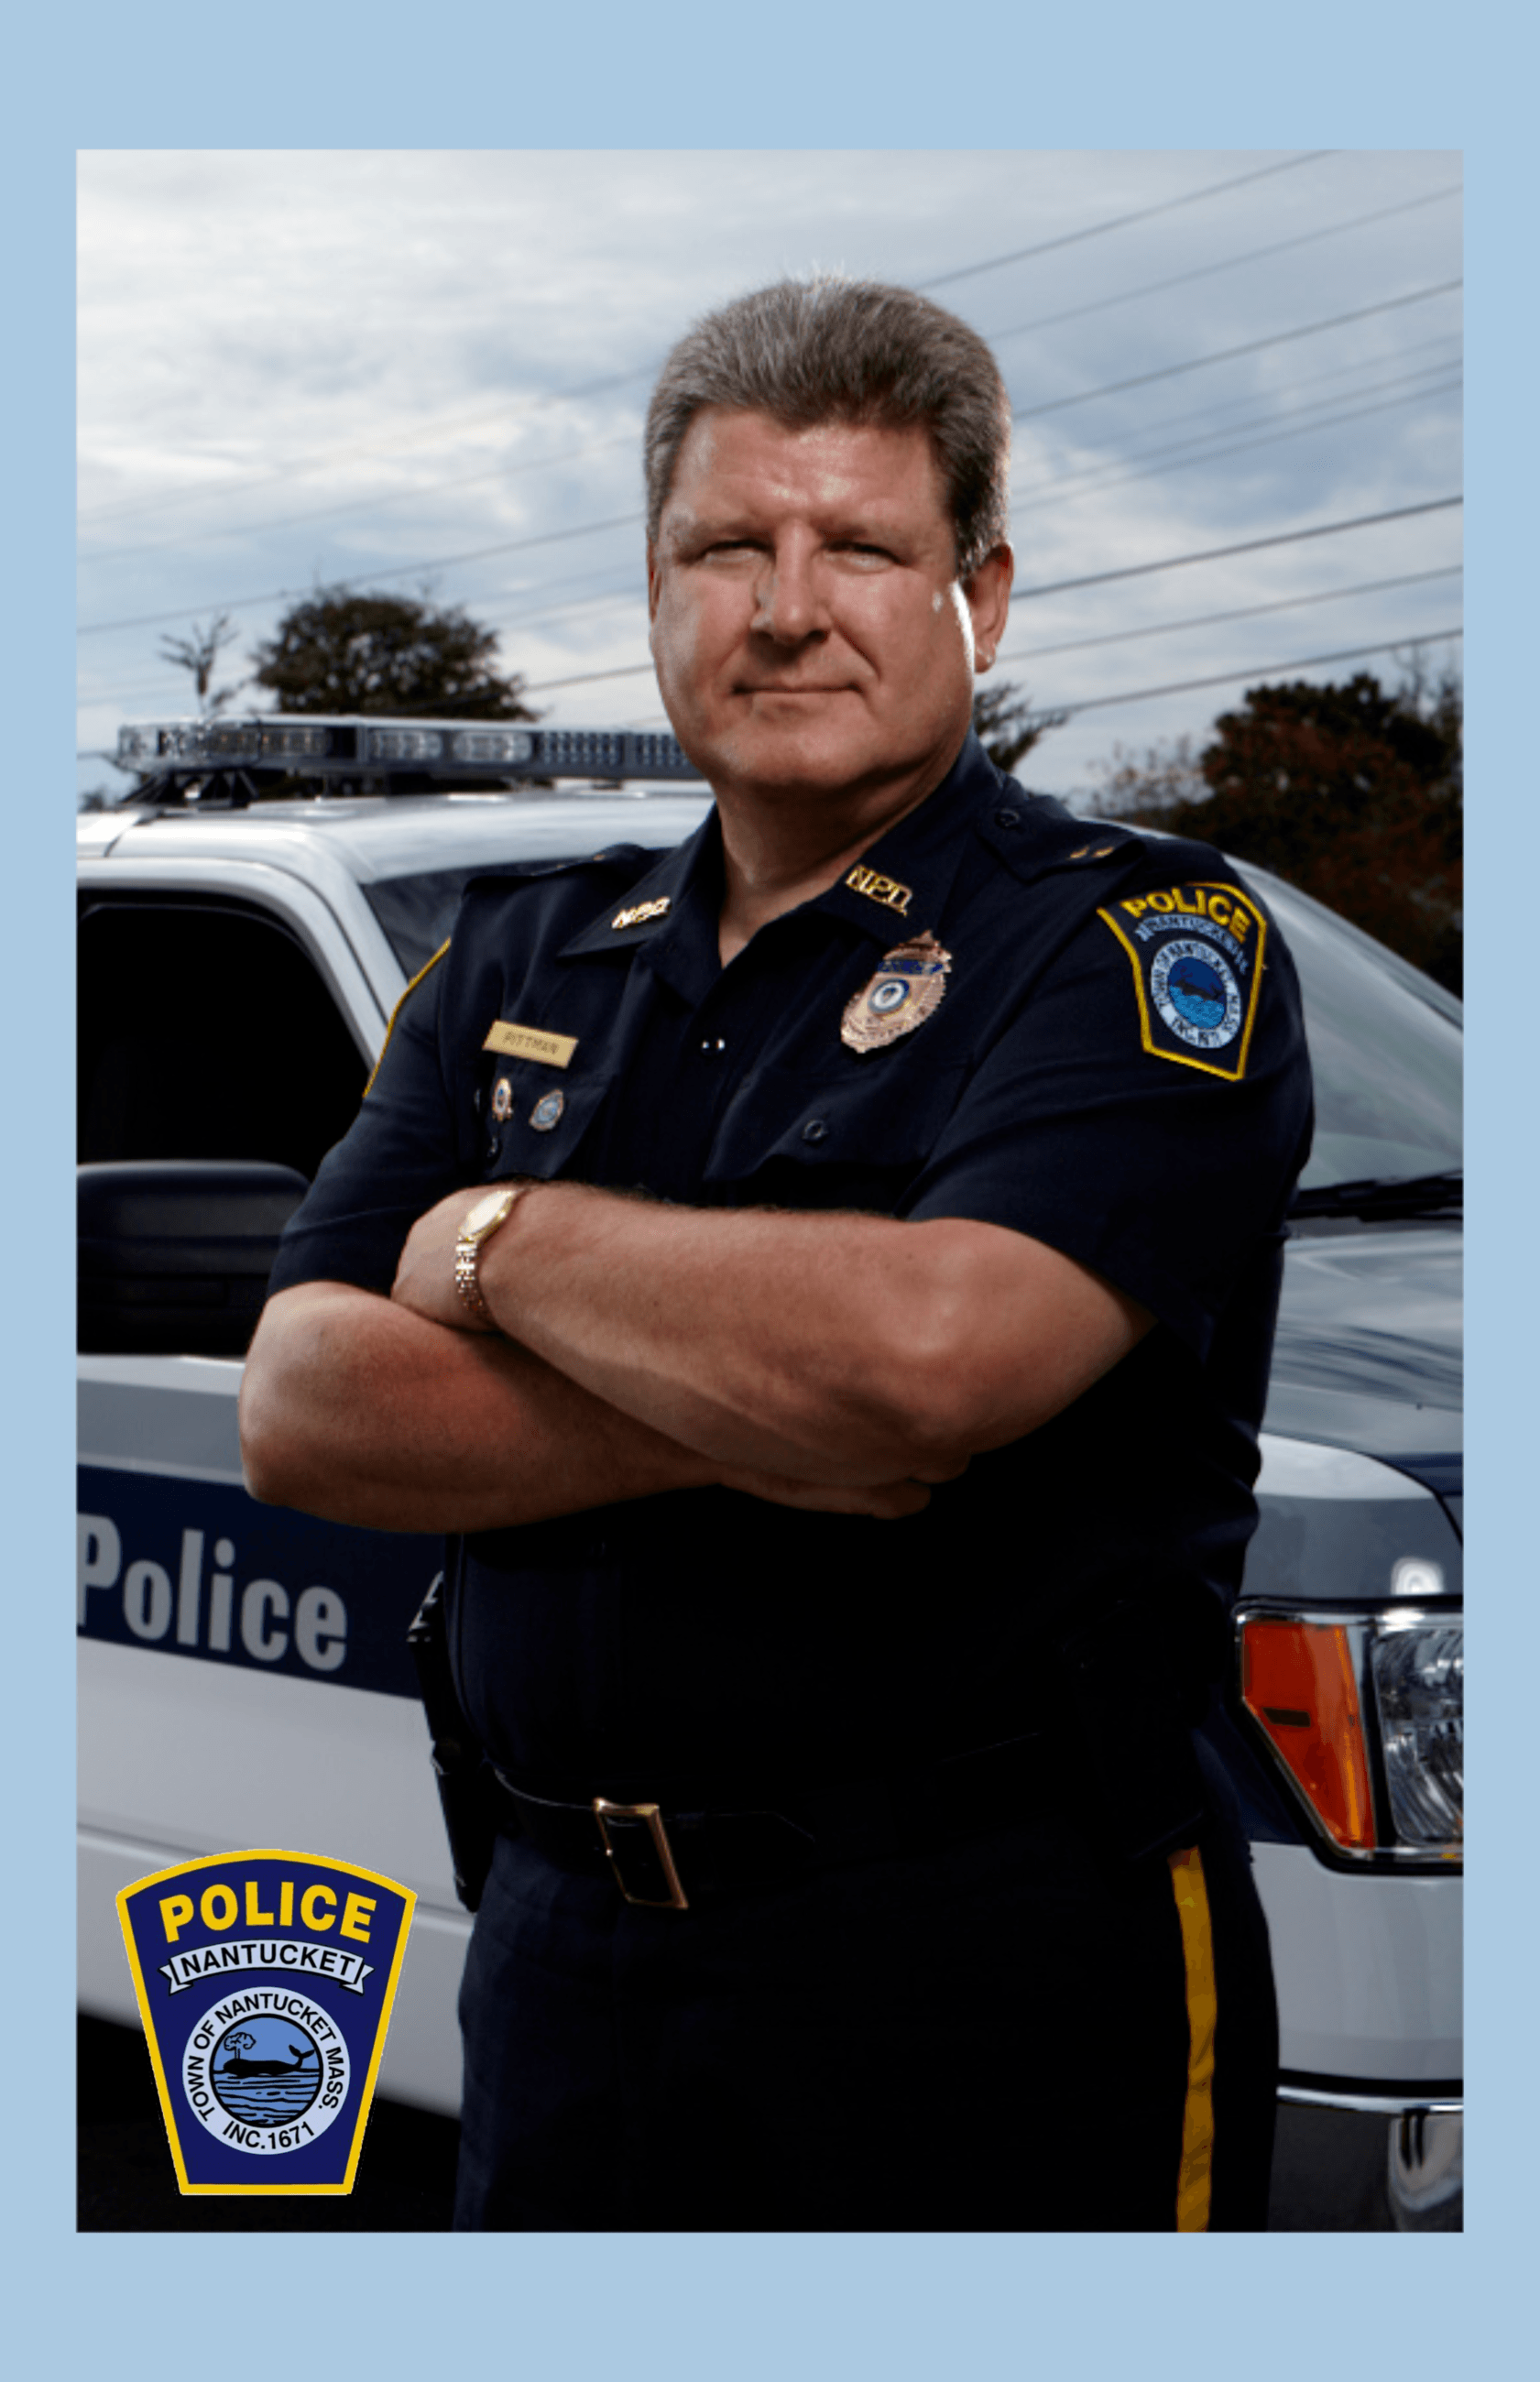 Chief of Police William Pittman Profile Picture